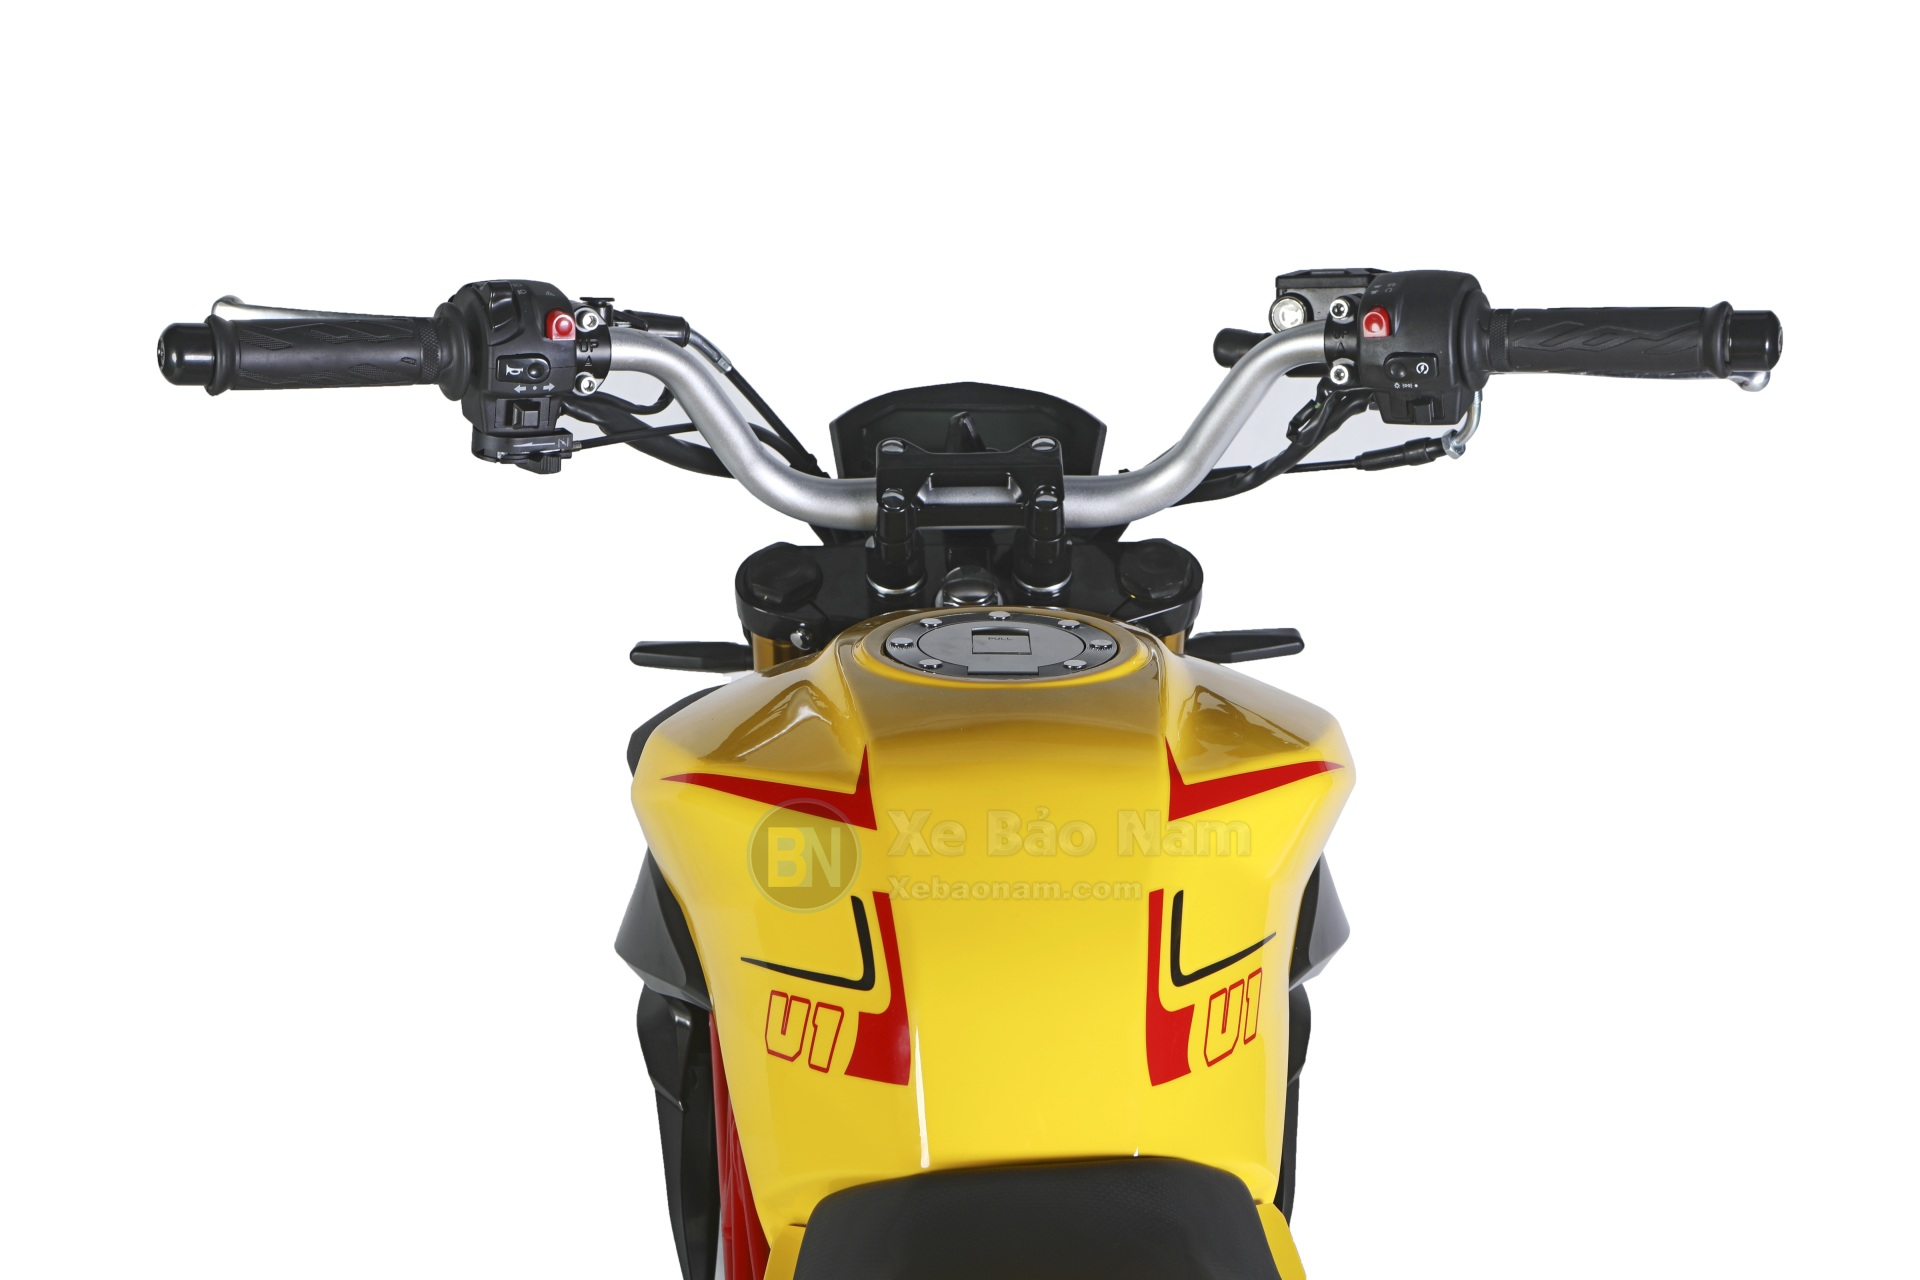 xe-may-mv-agusta-mini-110-new-xebaonam-18